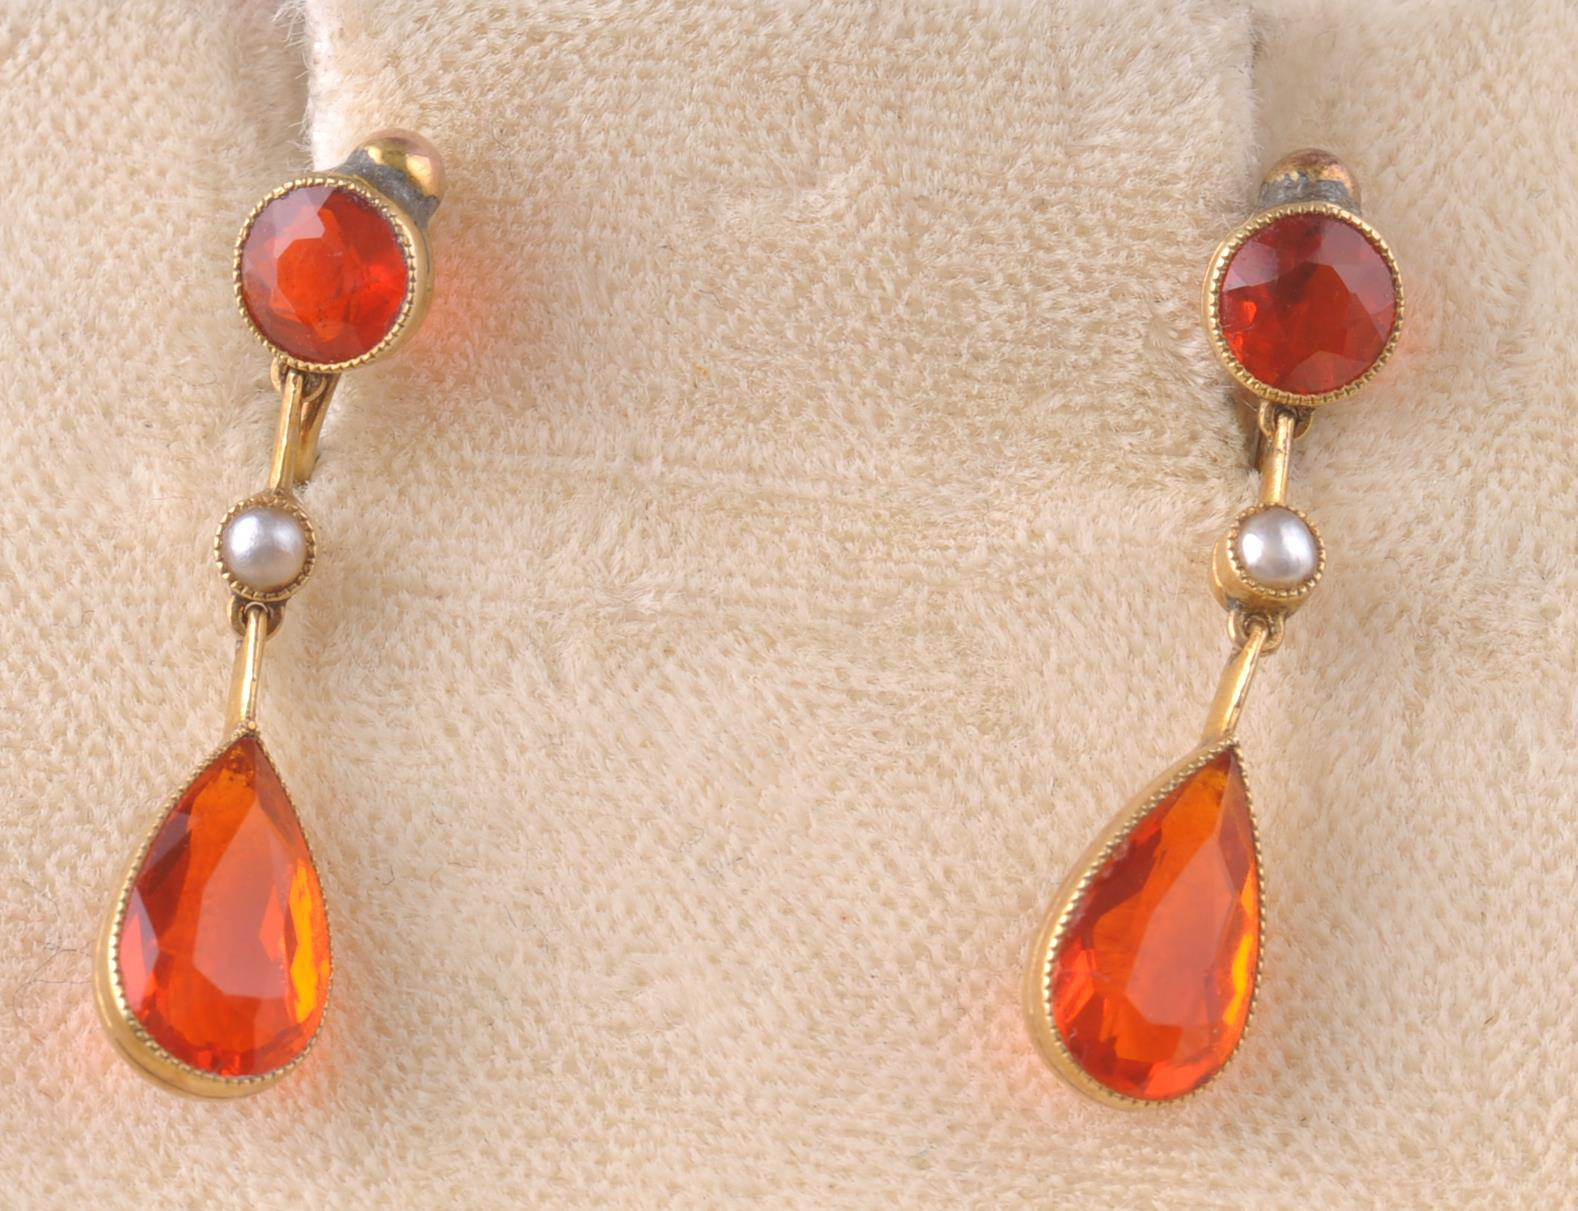 A PAIR OF EARLY 20TH CENTURY SPESSARTINE GARNET & - Image 3 of 4